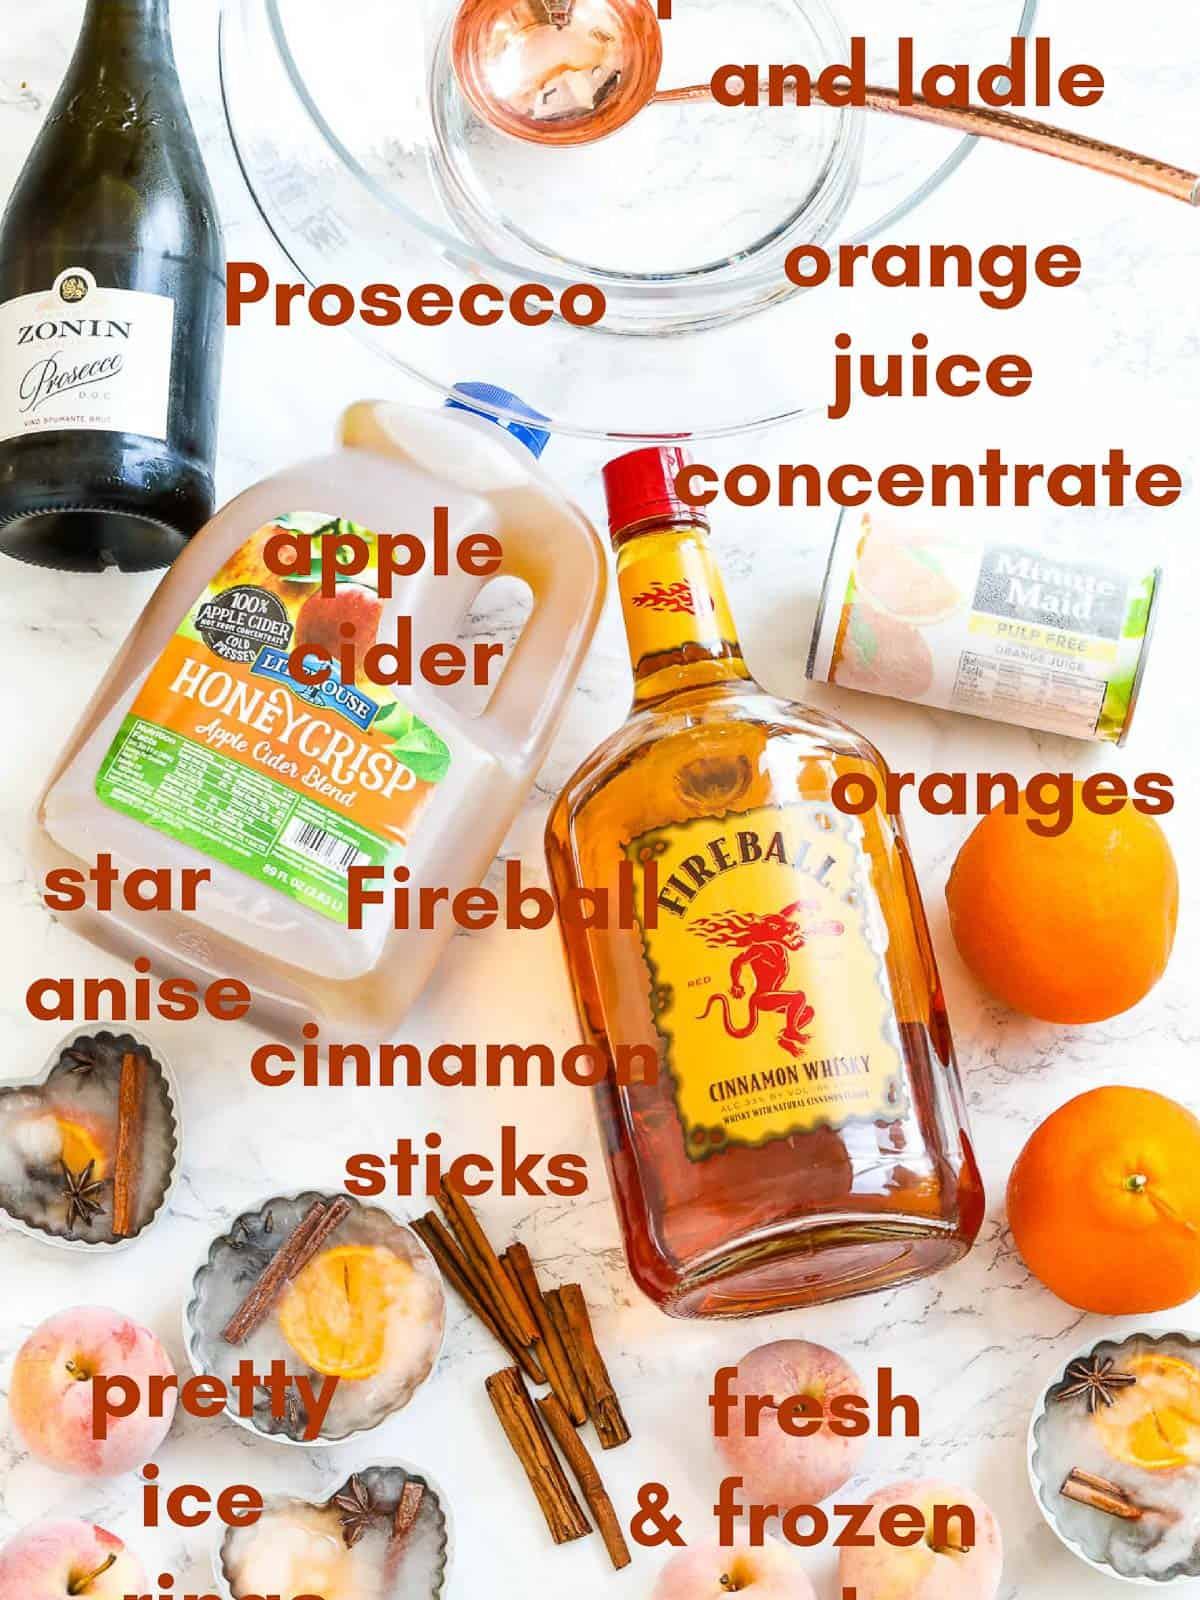 All the ingredients to make Fireball Thanksgiving punch labeled on a table including prosecco and apple cider.